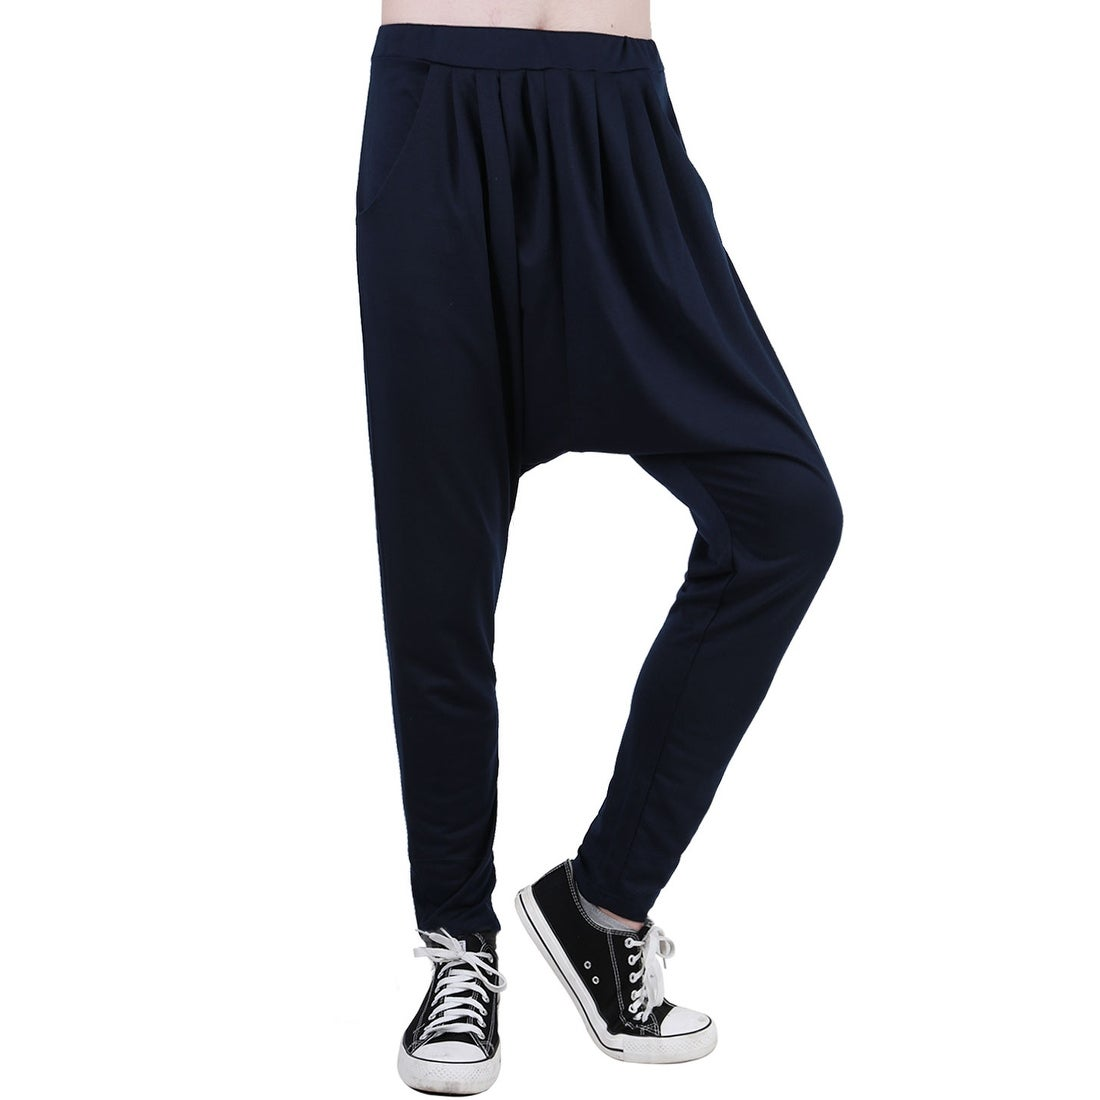 e84650b94c Unique Bargains Men's Elastic Waist Slant Pockets Tapered Leg Baggy Harem  Pants